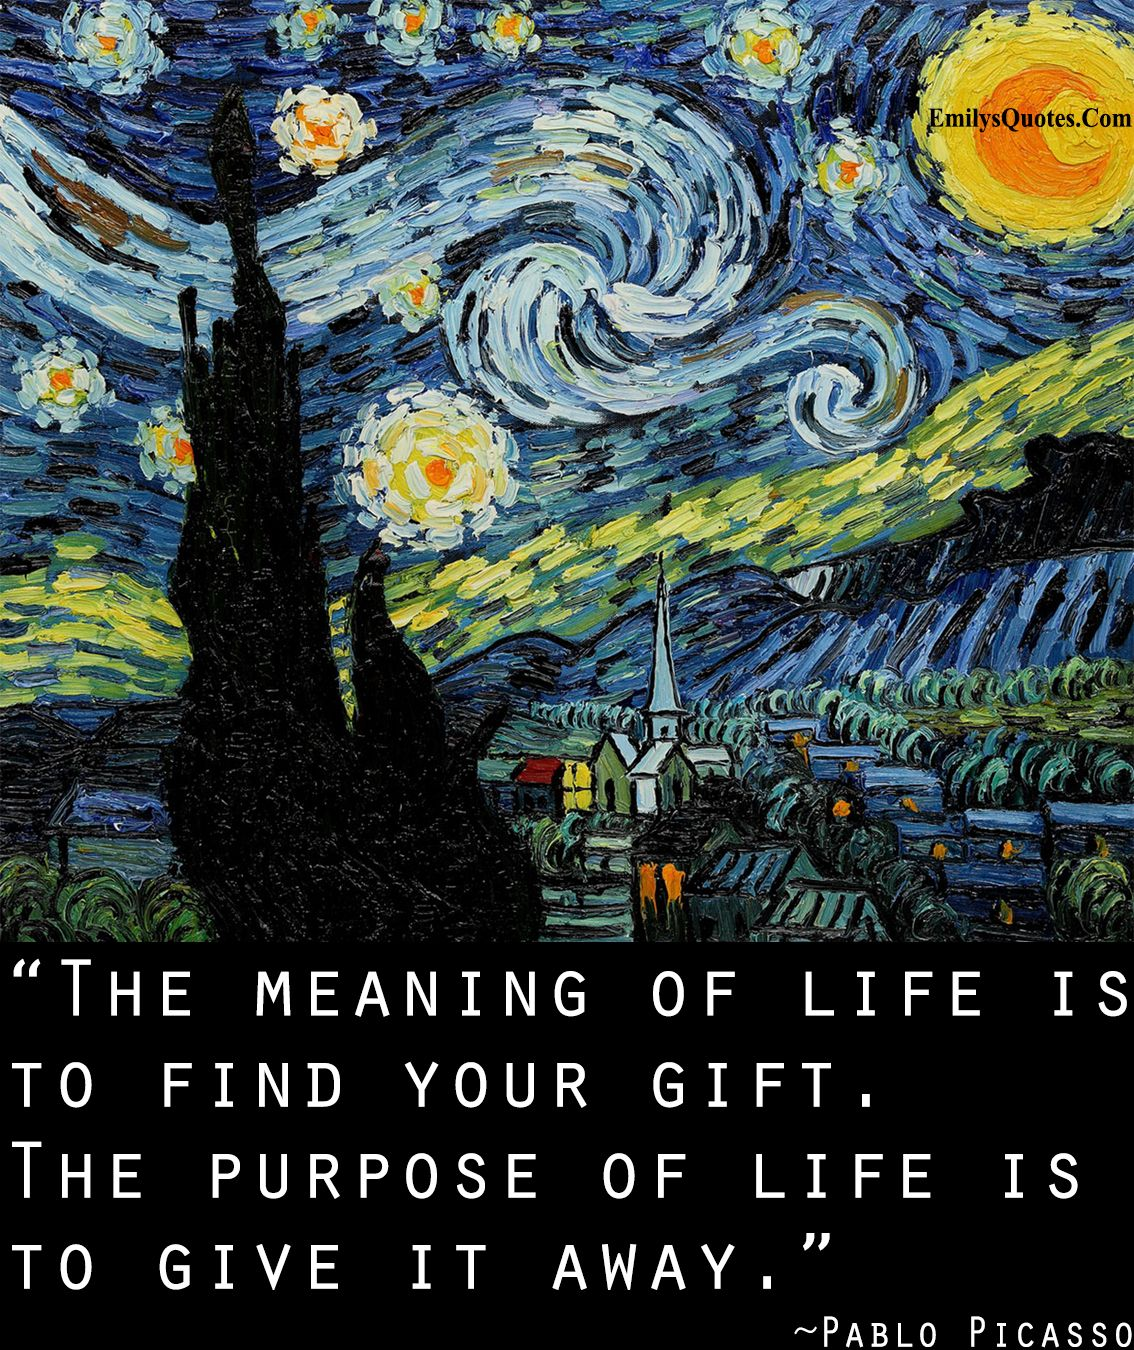 The meaning of life is to find your gift. The purpose of